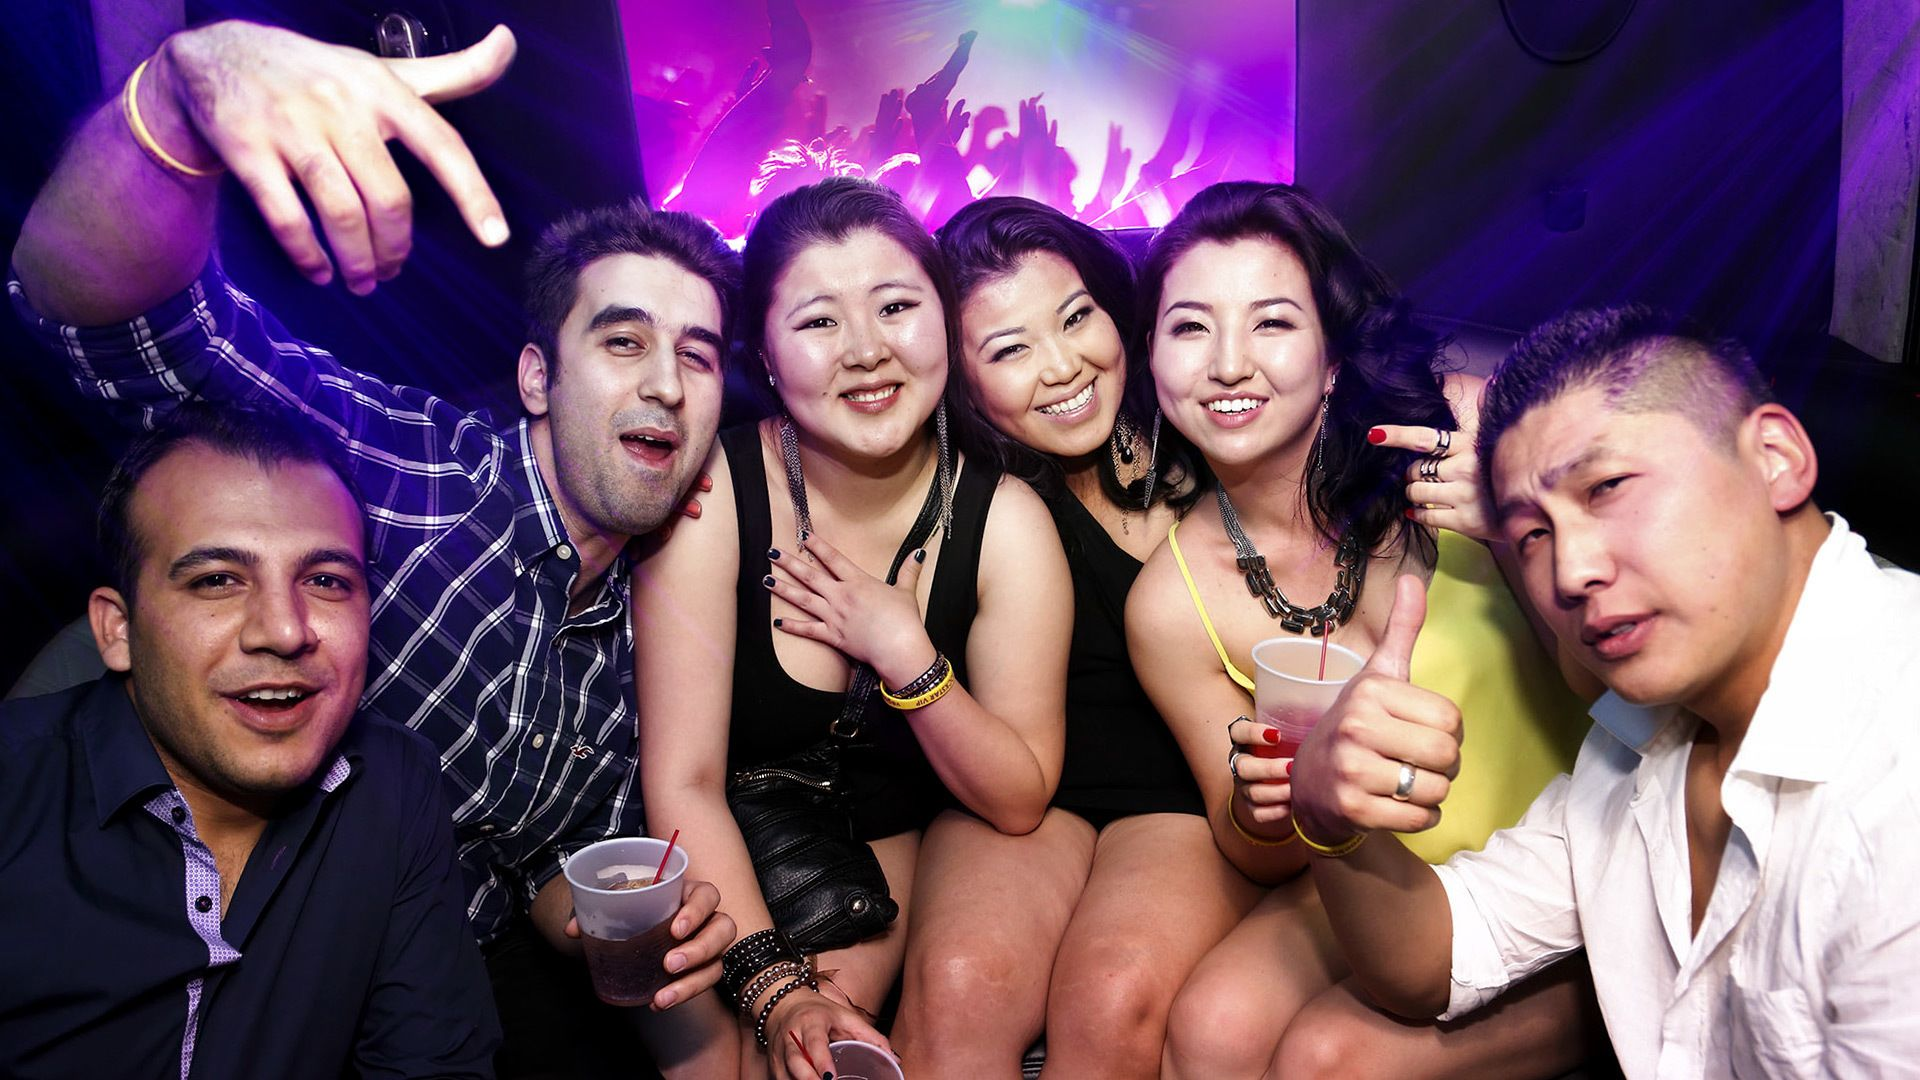 Close up image of a group having fun inside a club in Las Vegas